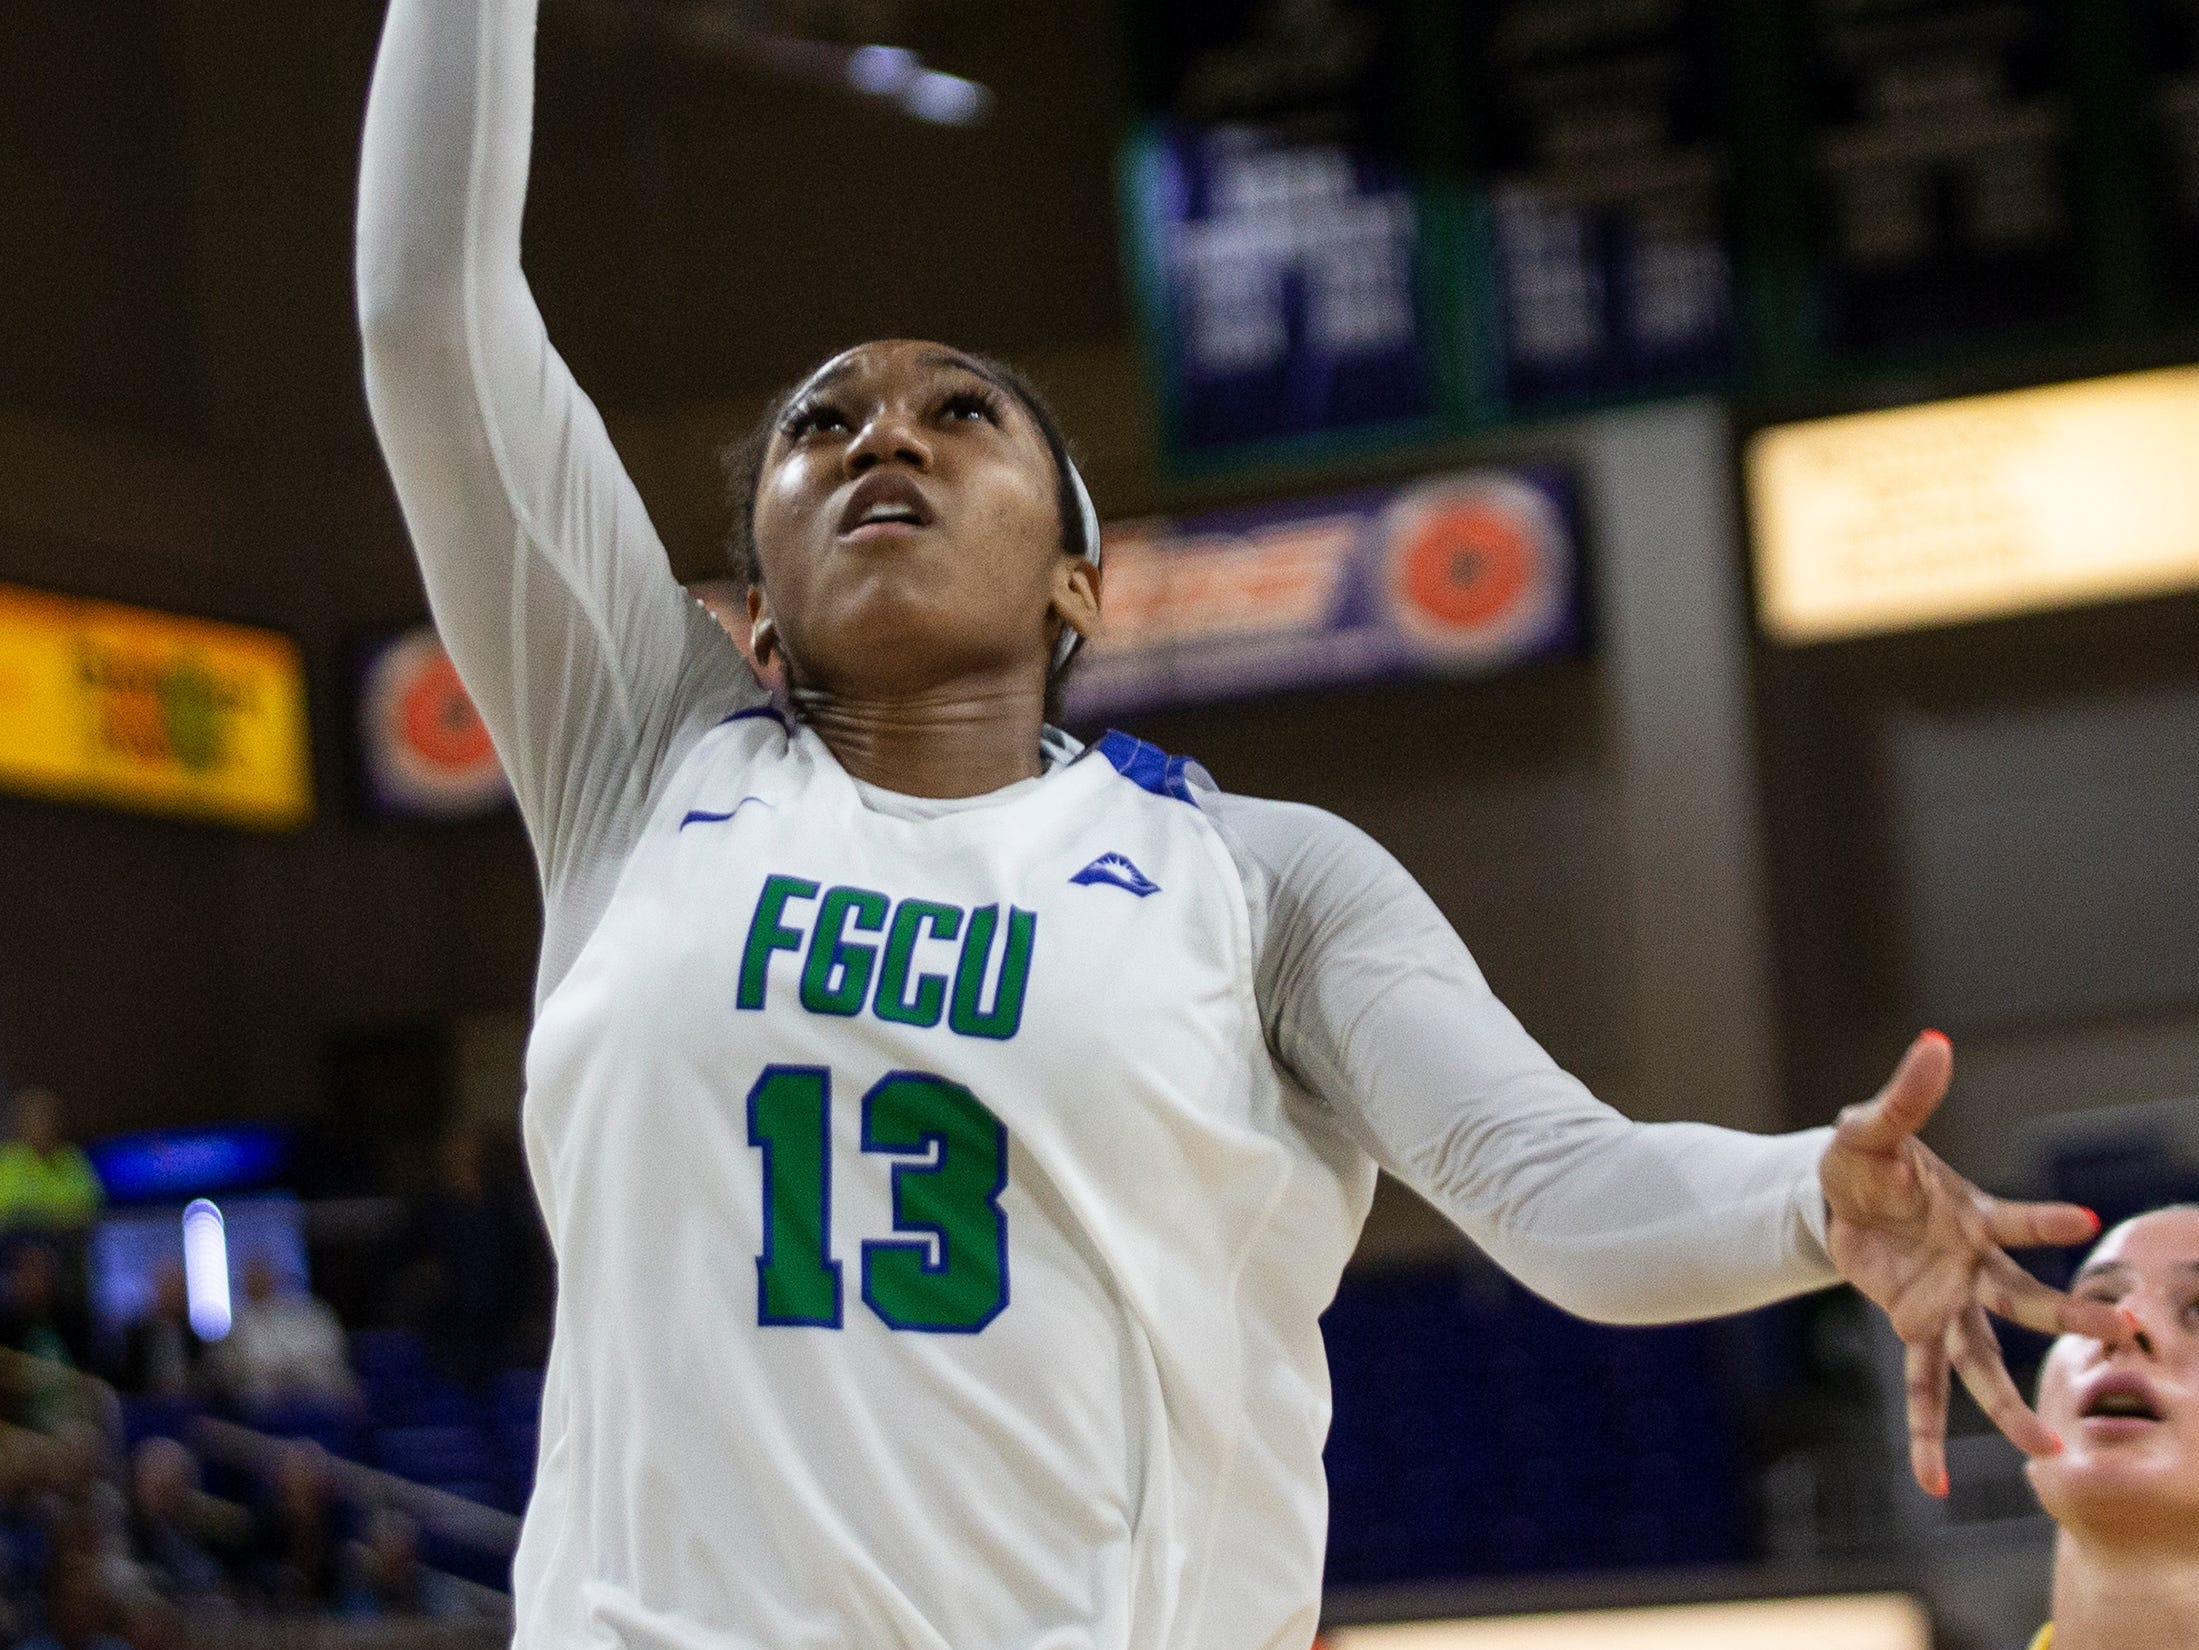 Florida Gulf Coast University's Kerstie Phills goes for a layup game against Kennesaw State, Wednesday, March 13, 2019, at Florida Gulf Coast University's Alico Arena.